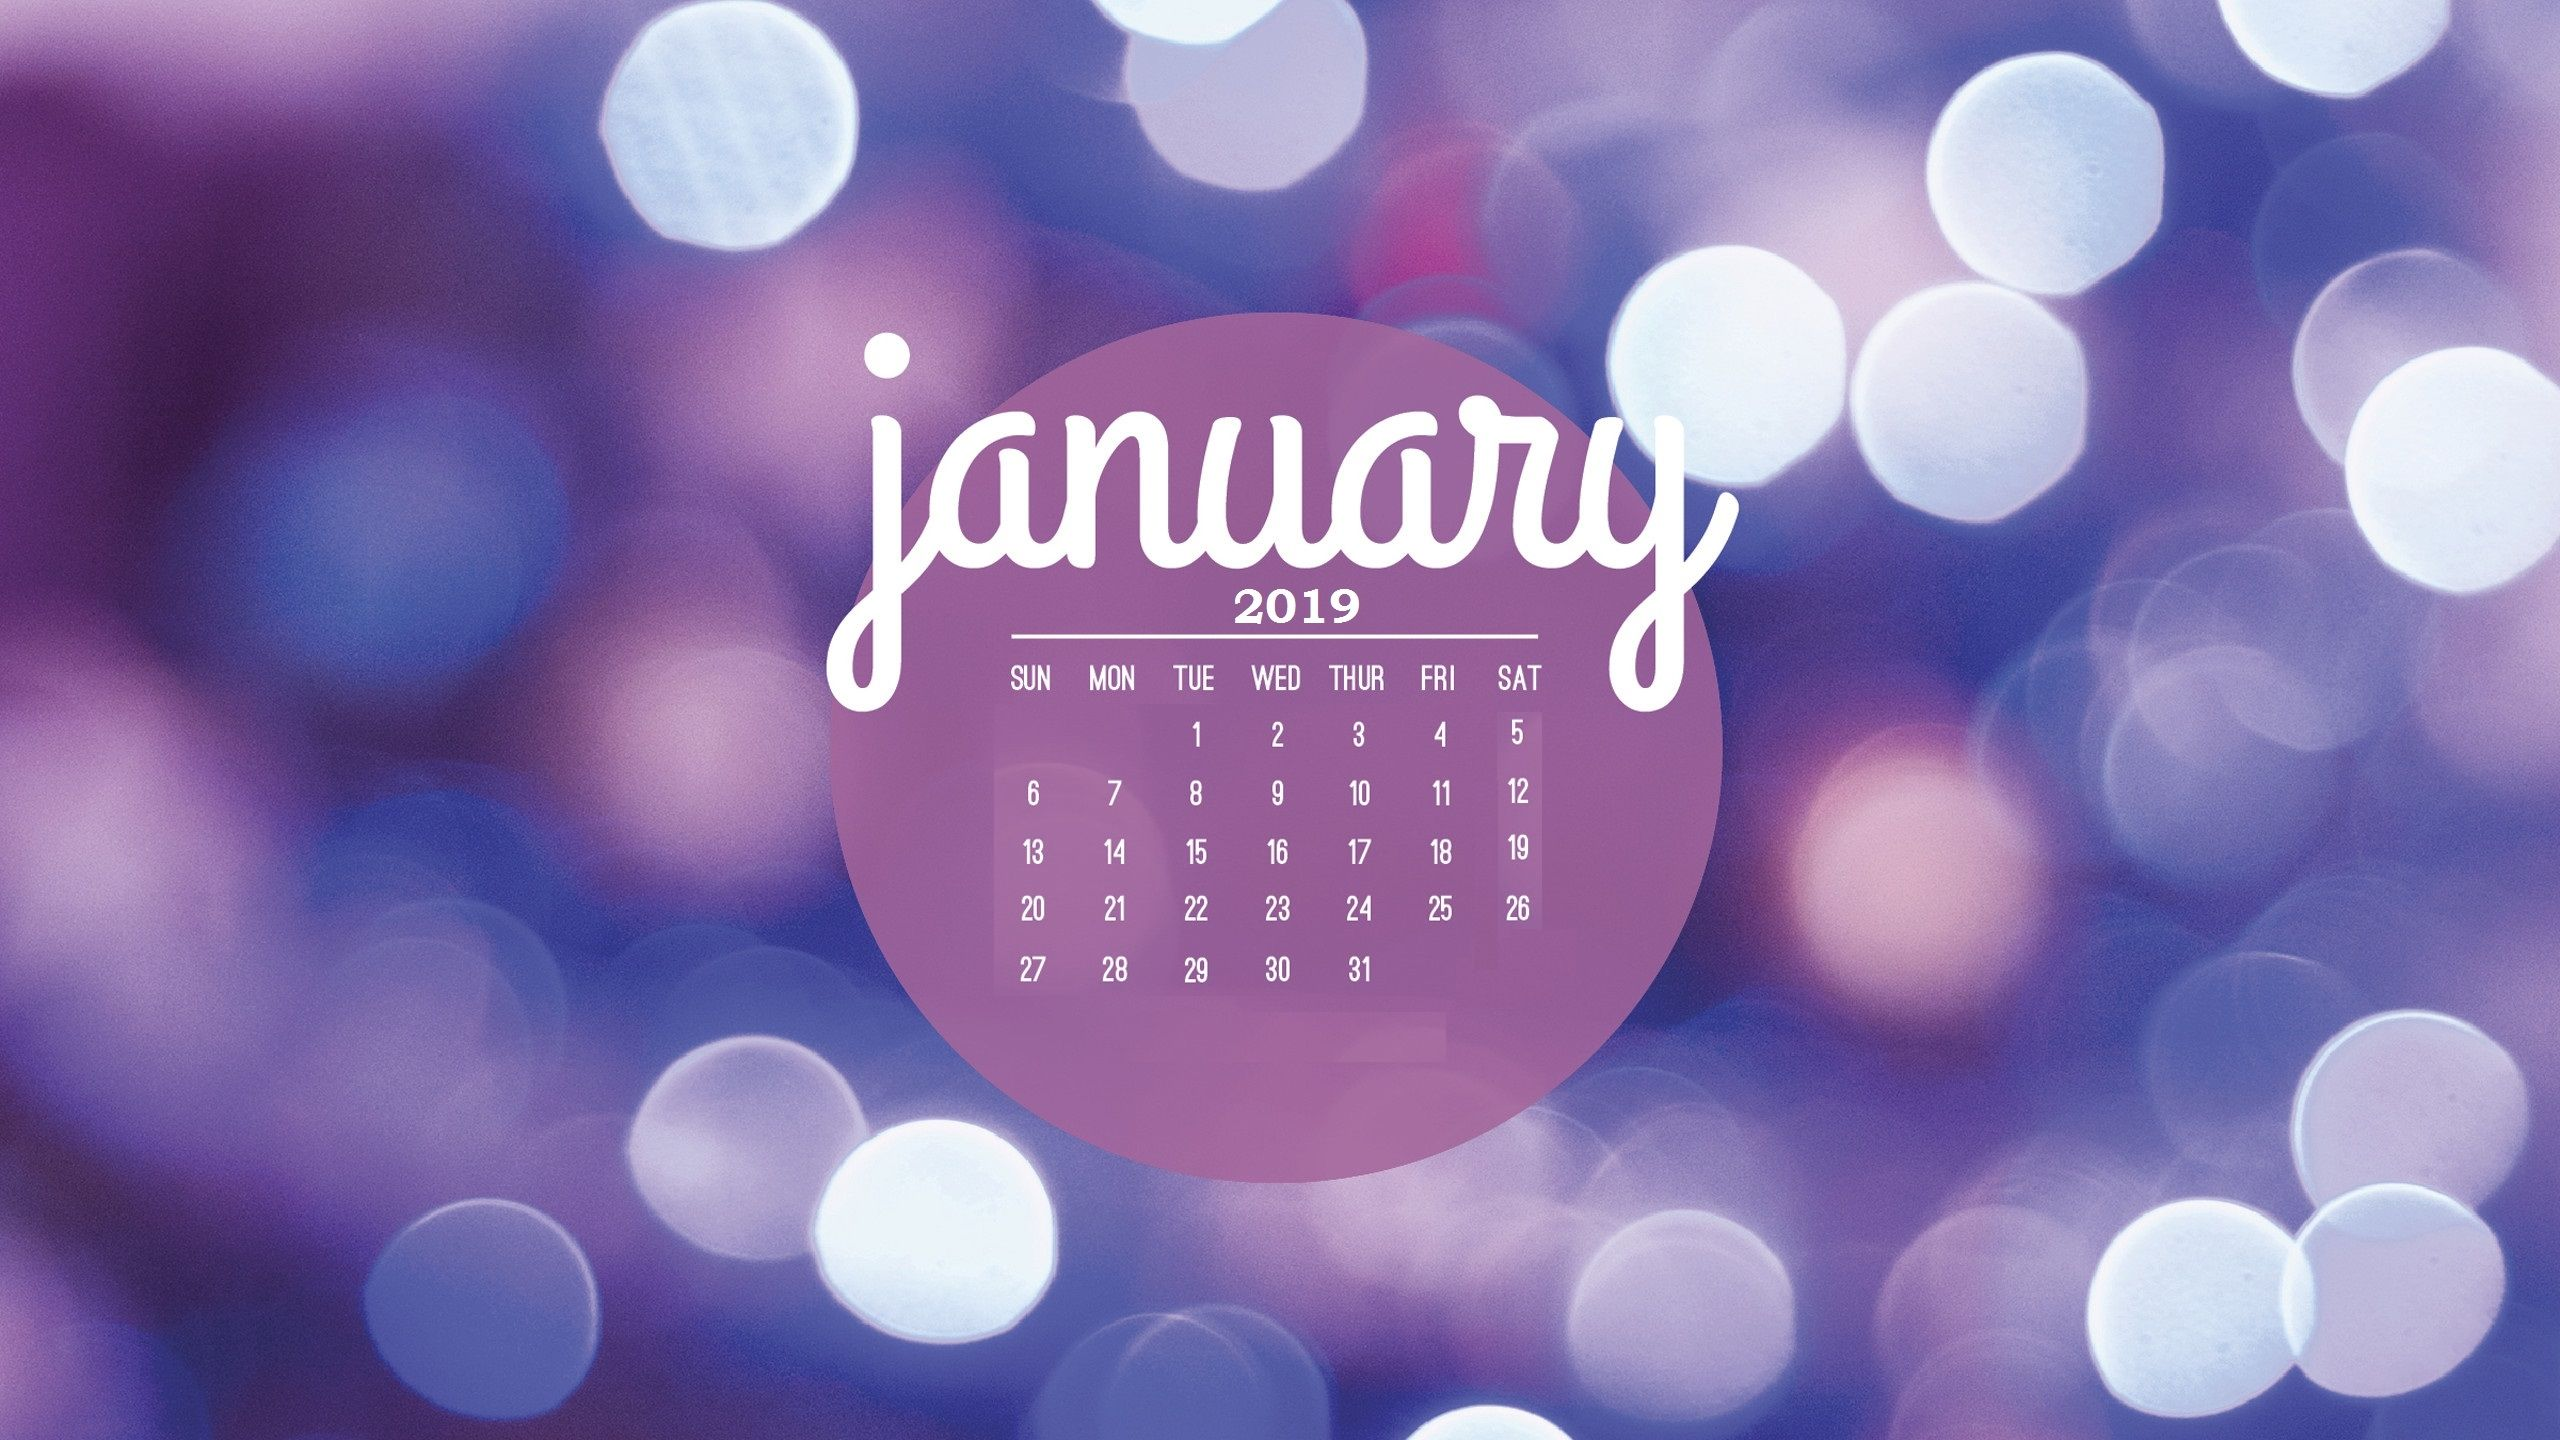 January 2019 Hd Calendar Wallpapers Calendar 2019january 2019 Desktop Calendar Wallpaper Calendar Wallpaper Desktop Wallpaper Calendar Desktop Calendar